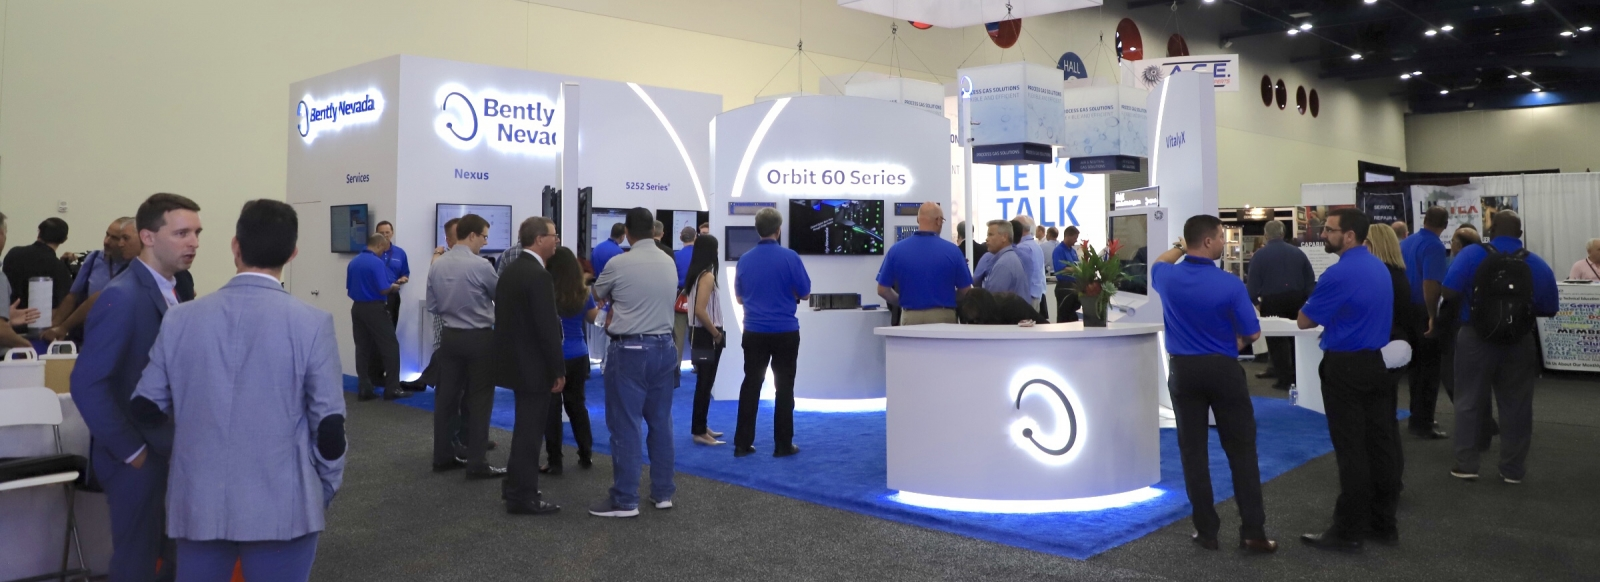 BHGE Turbo Social Official Booth